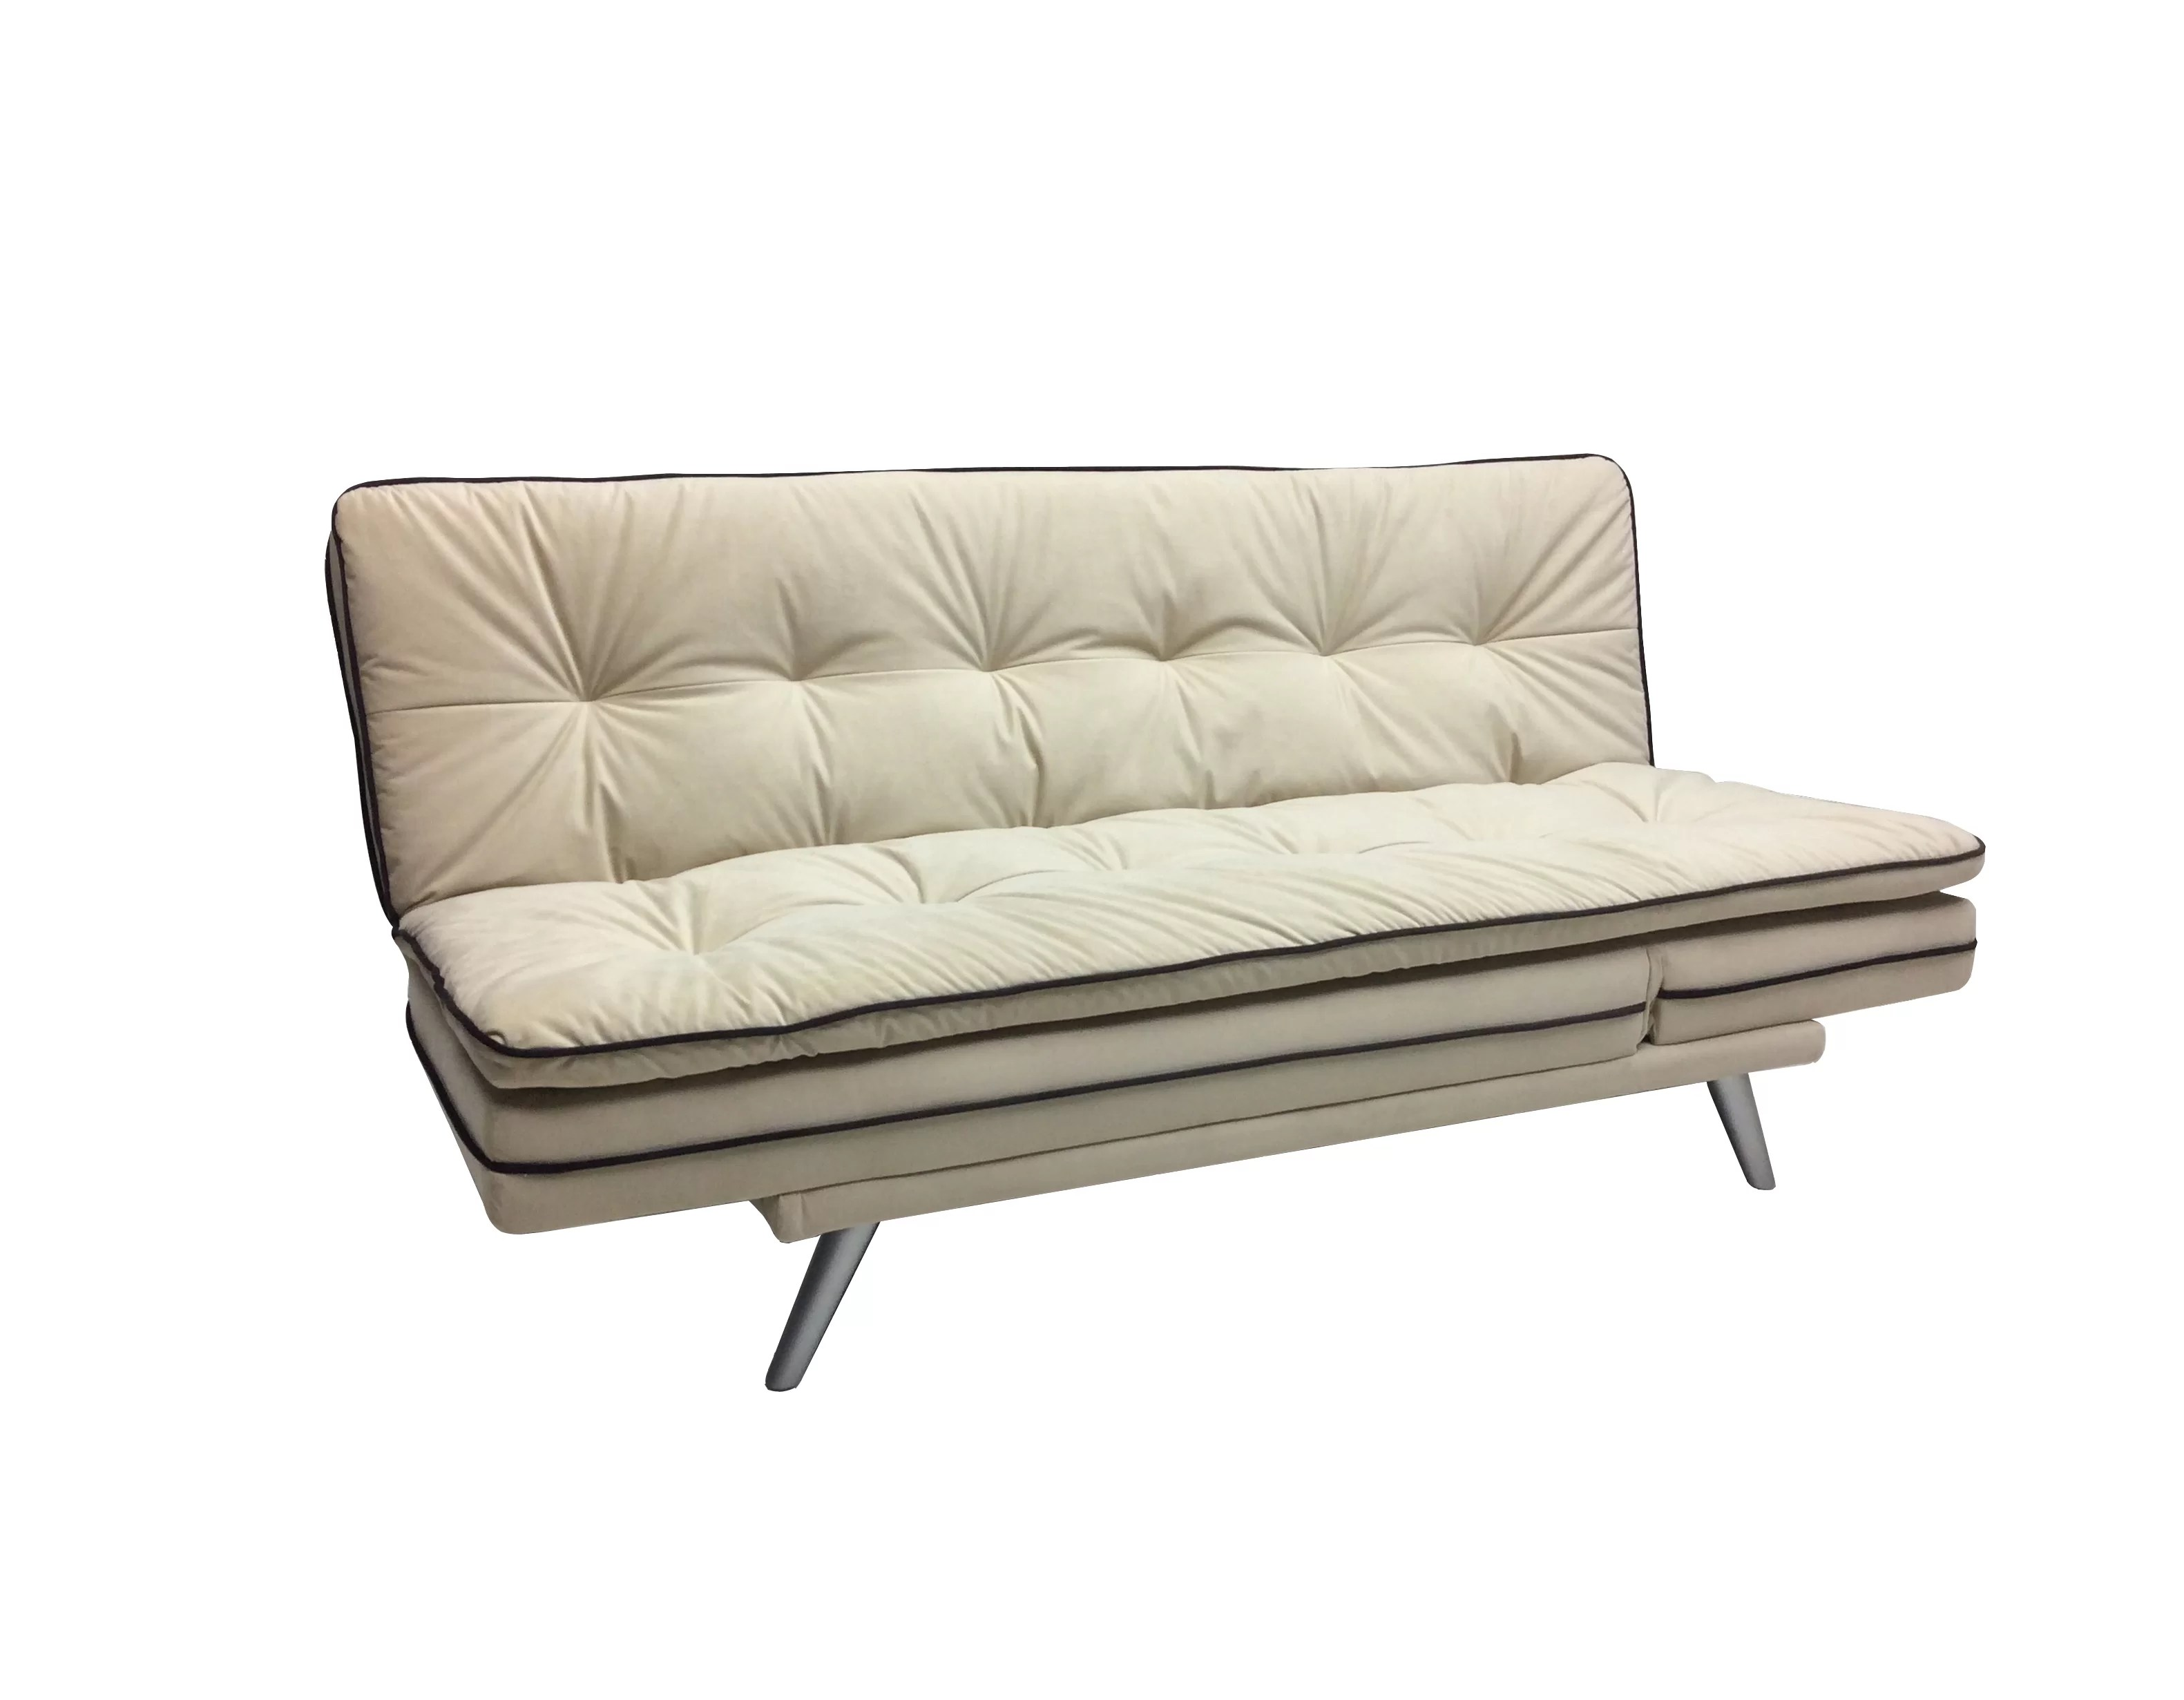 Futon Convertible 1 Place Julianne 3 In 1 Multi Function Convertible Sofa